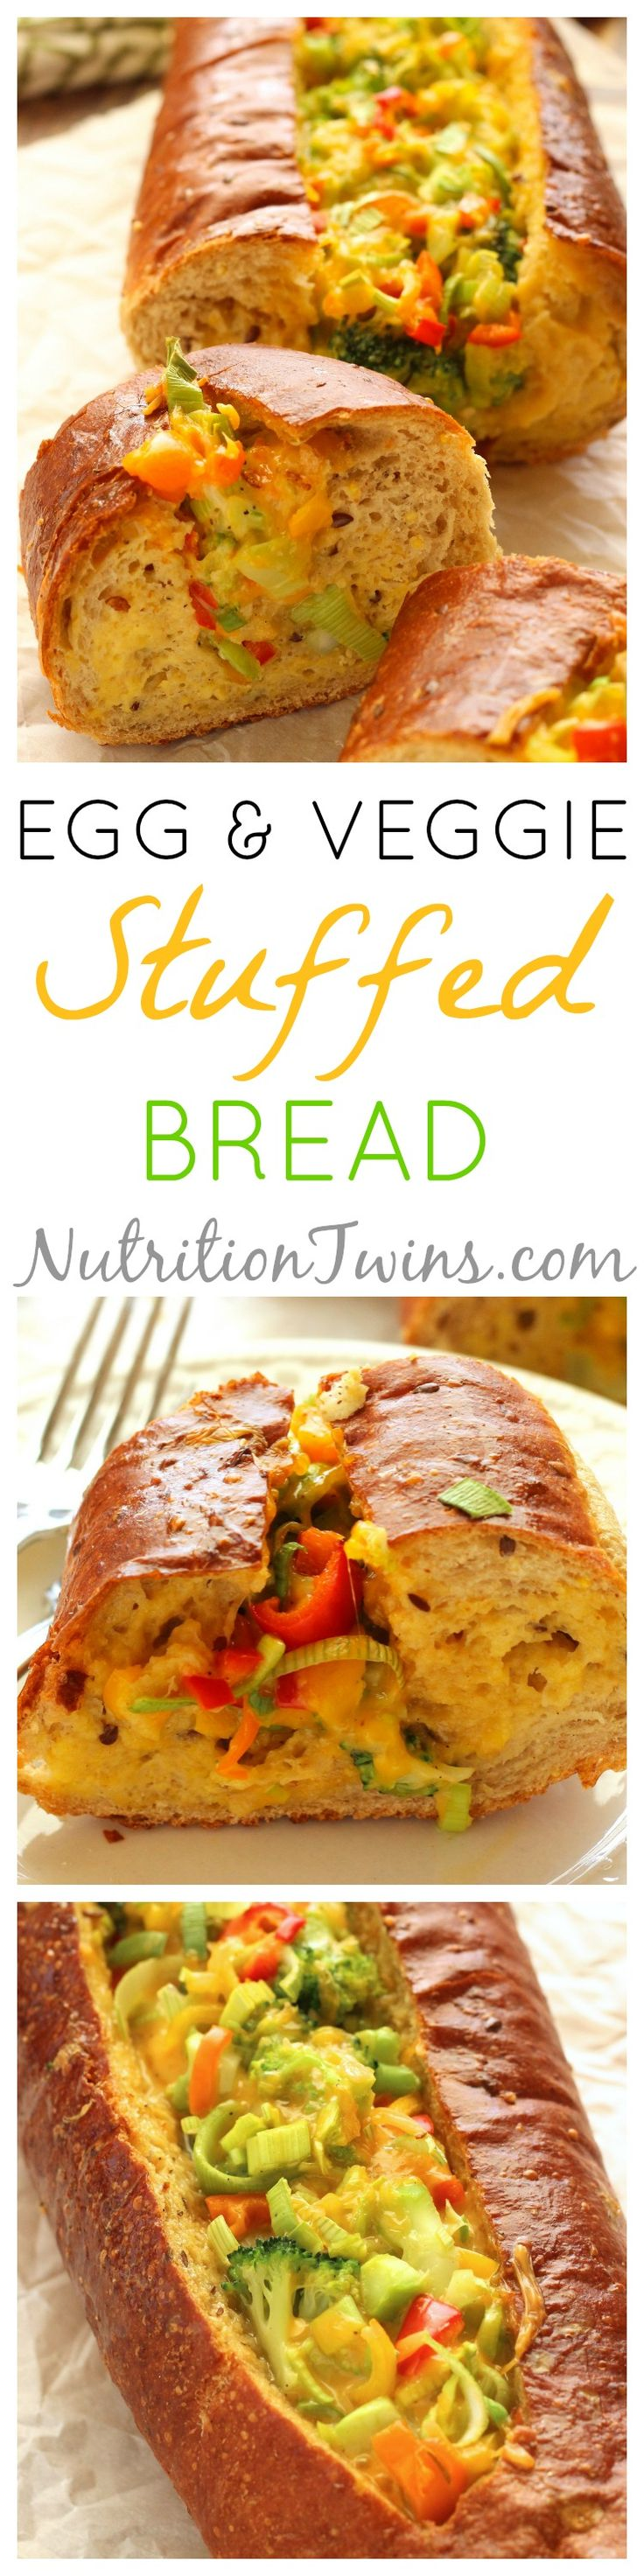 Egg & Veggie Stuffed Bread |Only 154 Calories | Crunchy Outside, Savory & Luscious Inside | Made with @egglandsbest  .client | For MORE RECIPES please SIGN UP for our FREE NEWSLETTER www.NutritionTwins.com